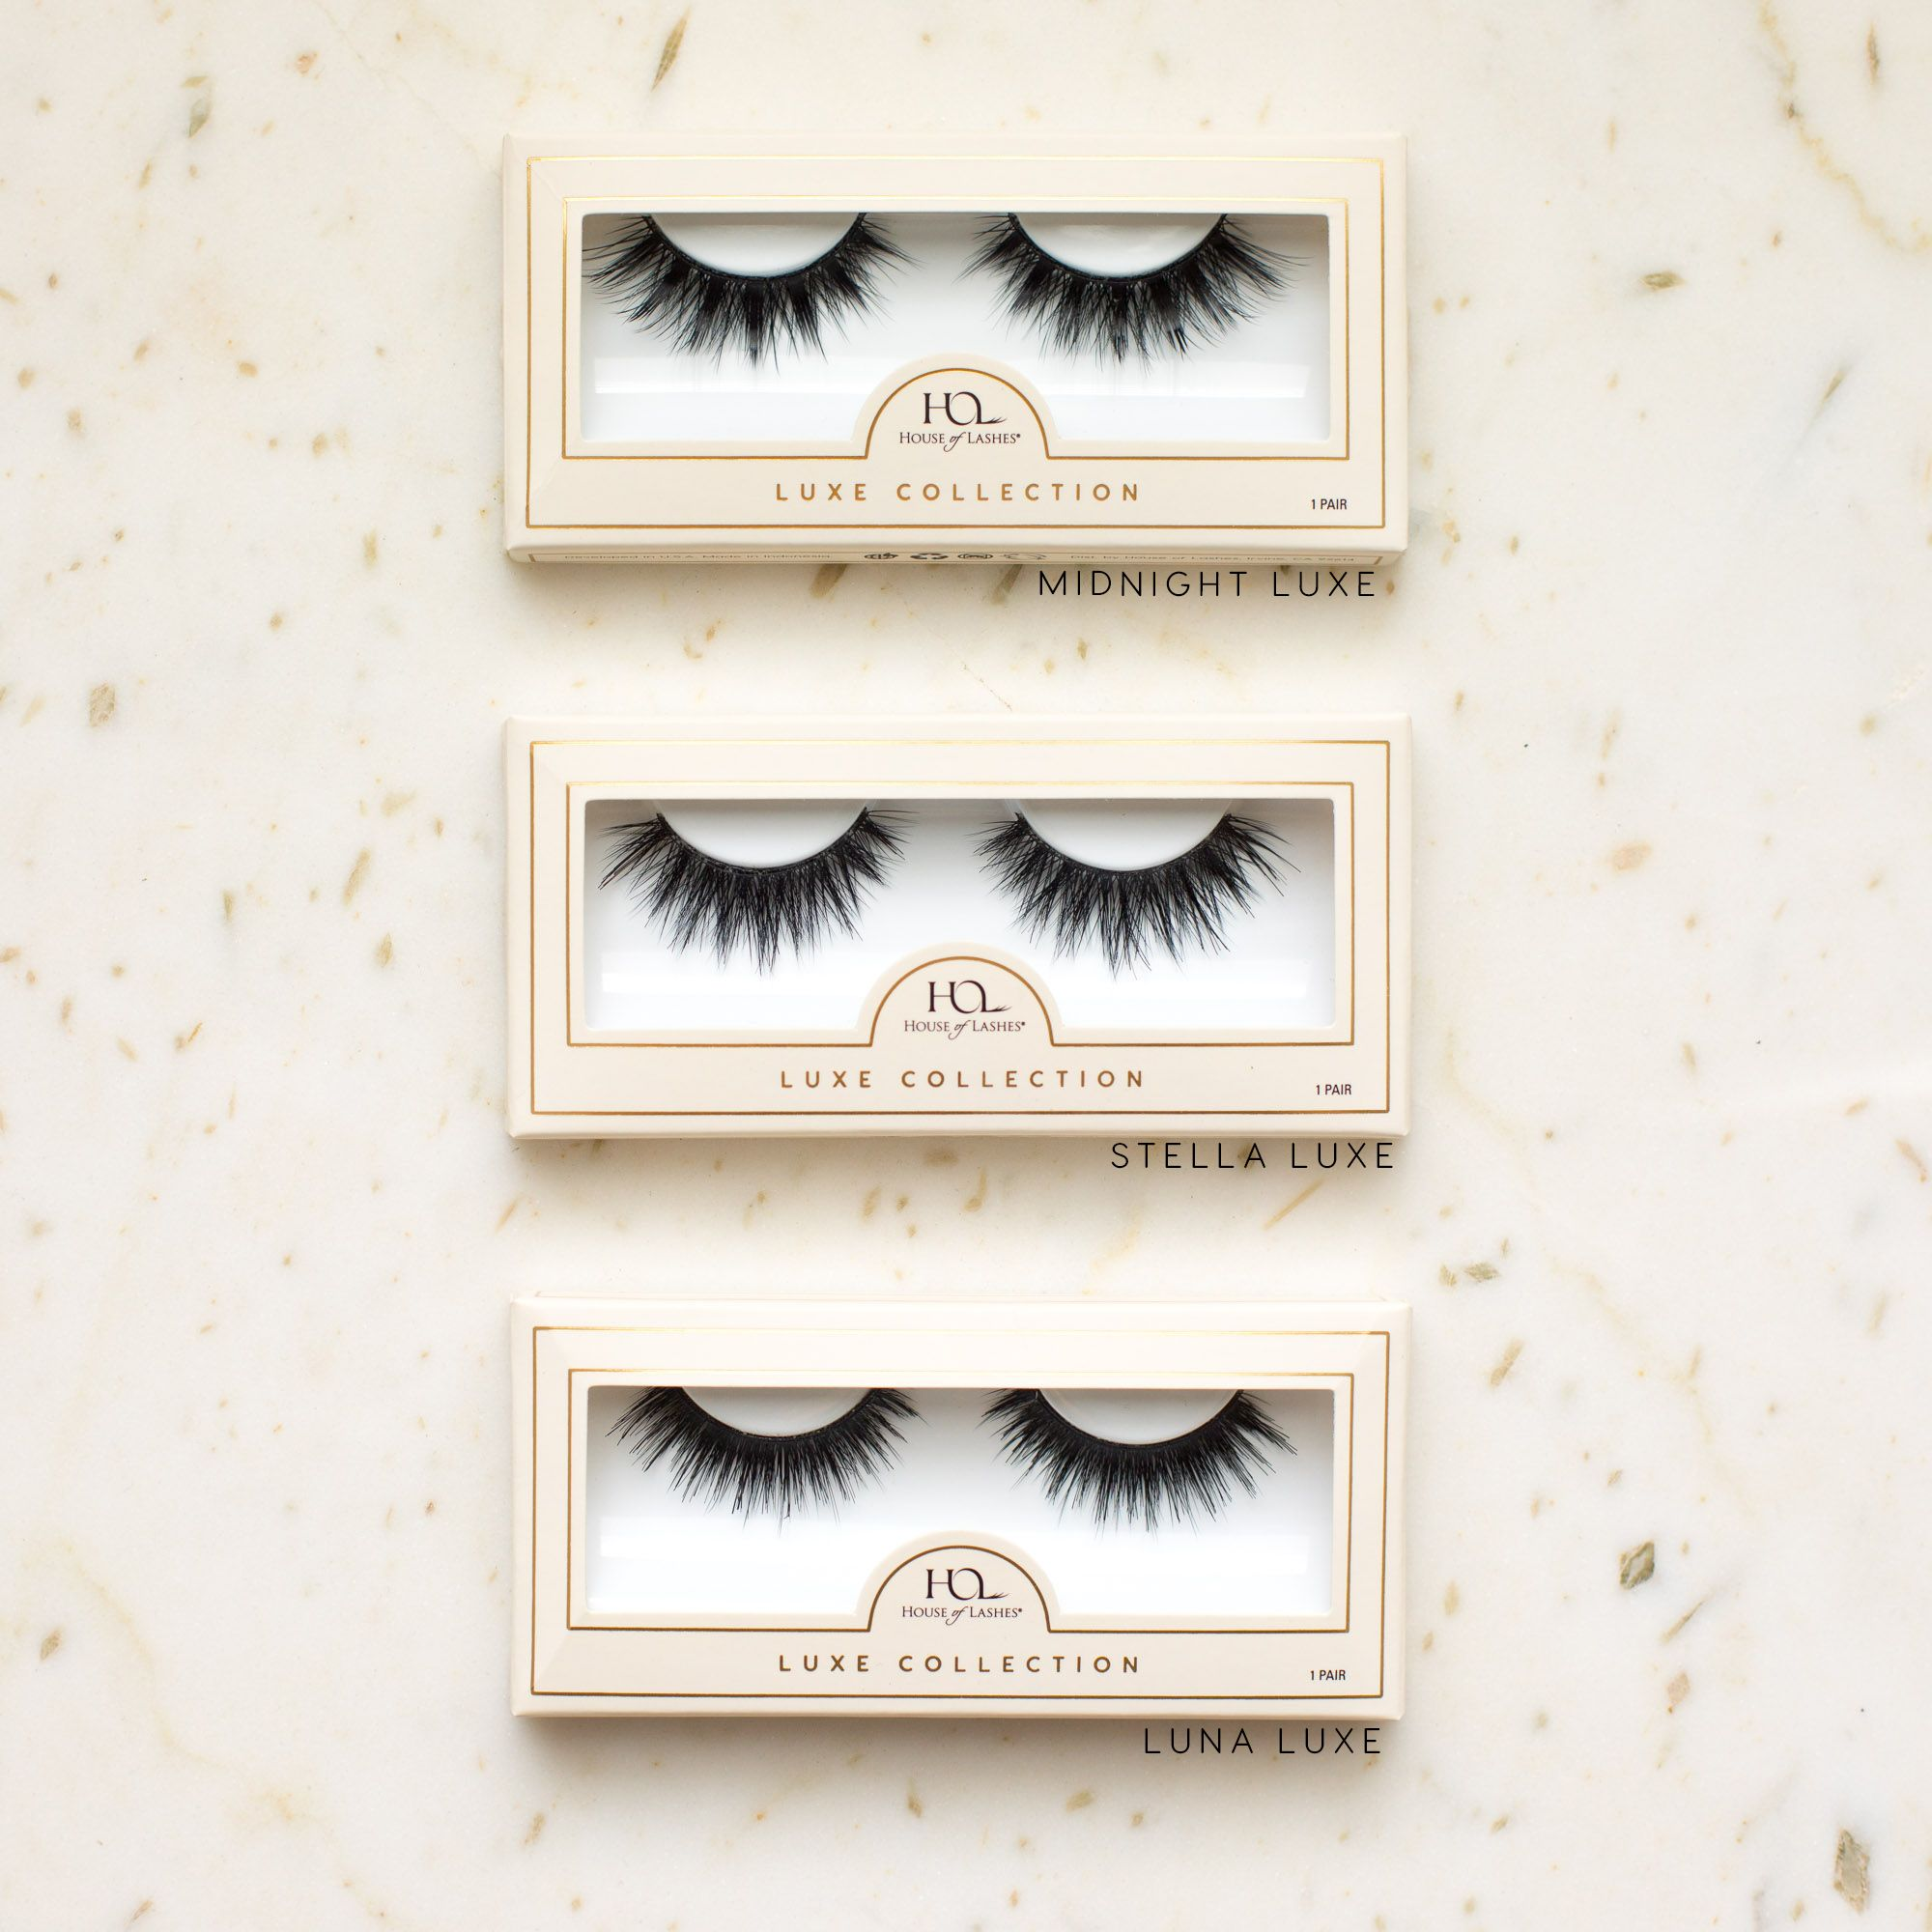 34aa3a70228 Our 3D Luxe Collection is here 🎉 With triple layers, these new lashes will  easily become your new favorites for evening affairs. Say hello to Midnight,  ...